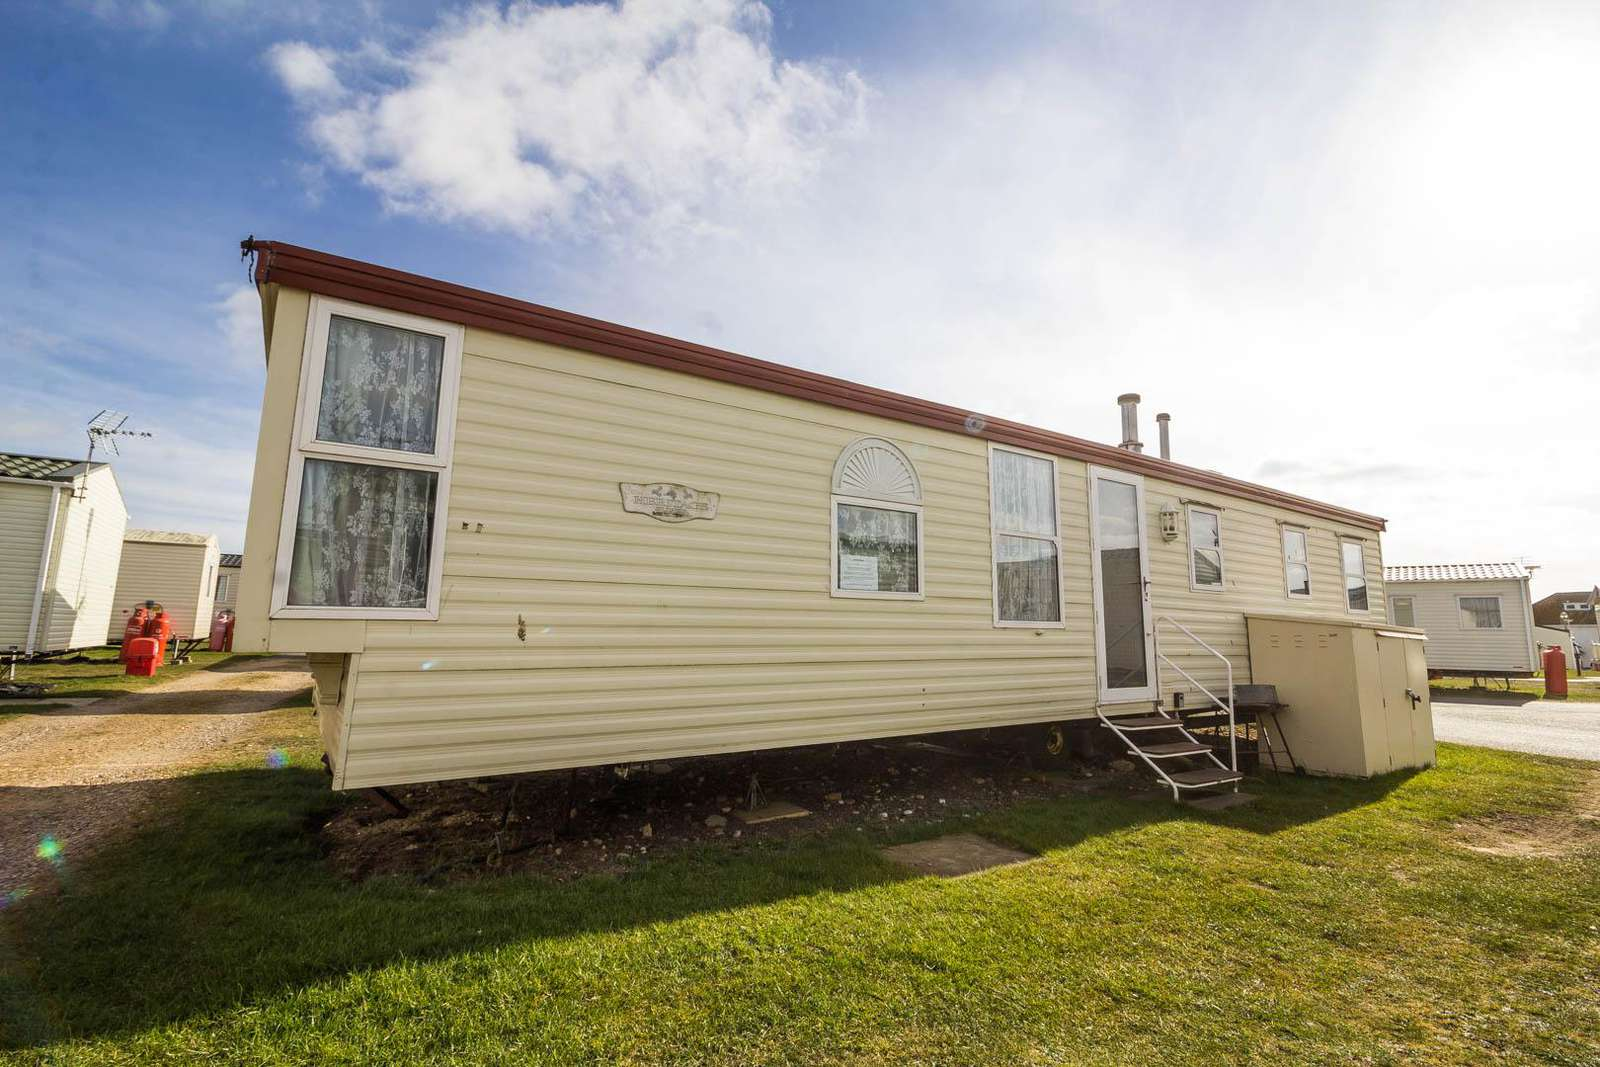 90047SV – Sea View area, 3 Bed, 8 Berth, caravan with partial seaview. Ruby rated. - property